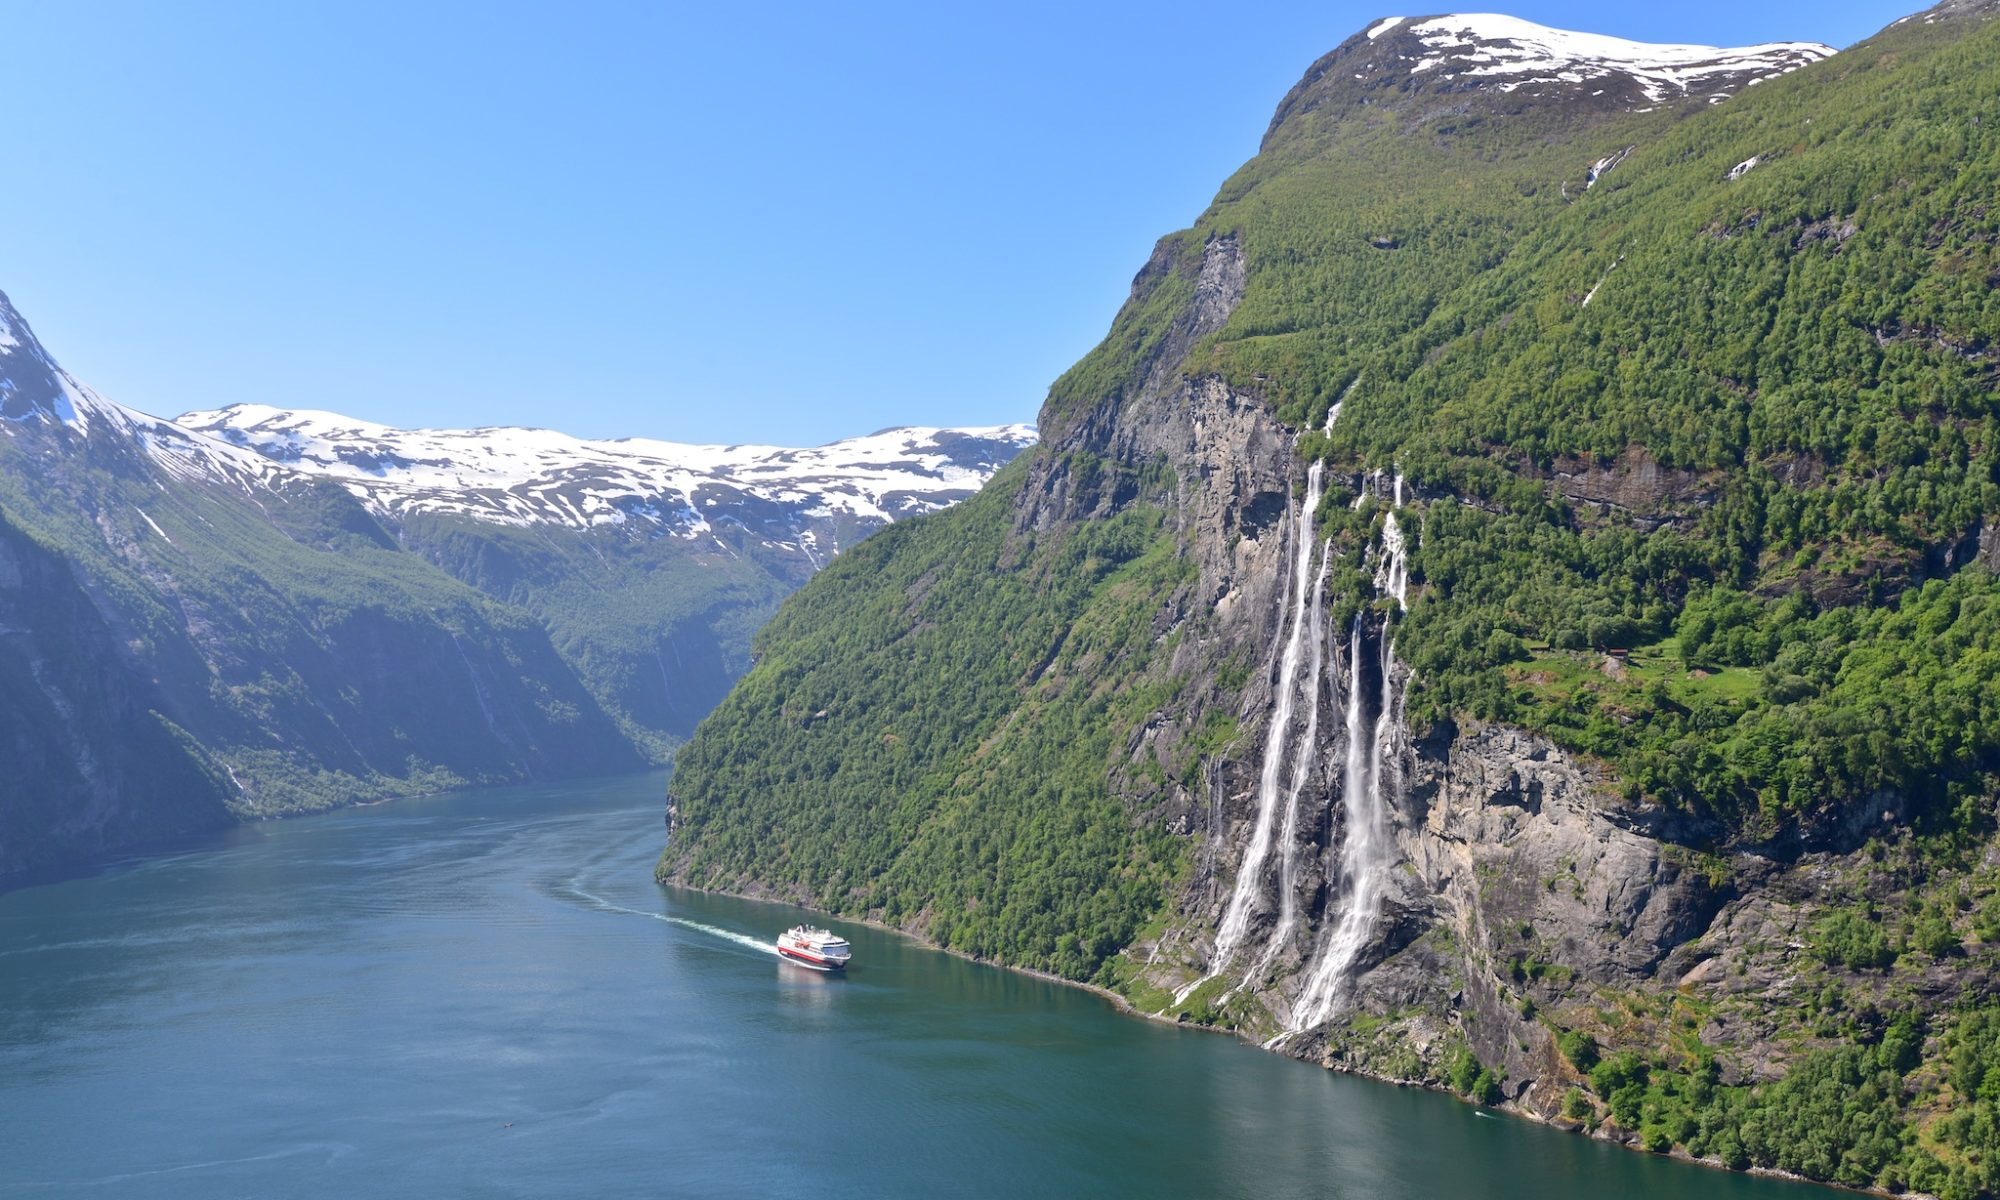 The Geirangerfjord and the Seven Sisters Waterfall